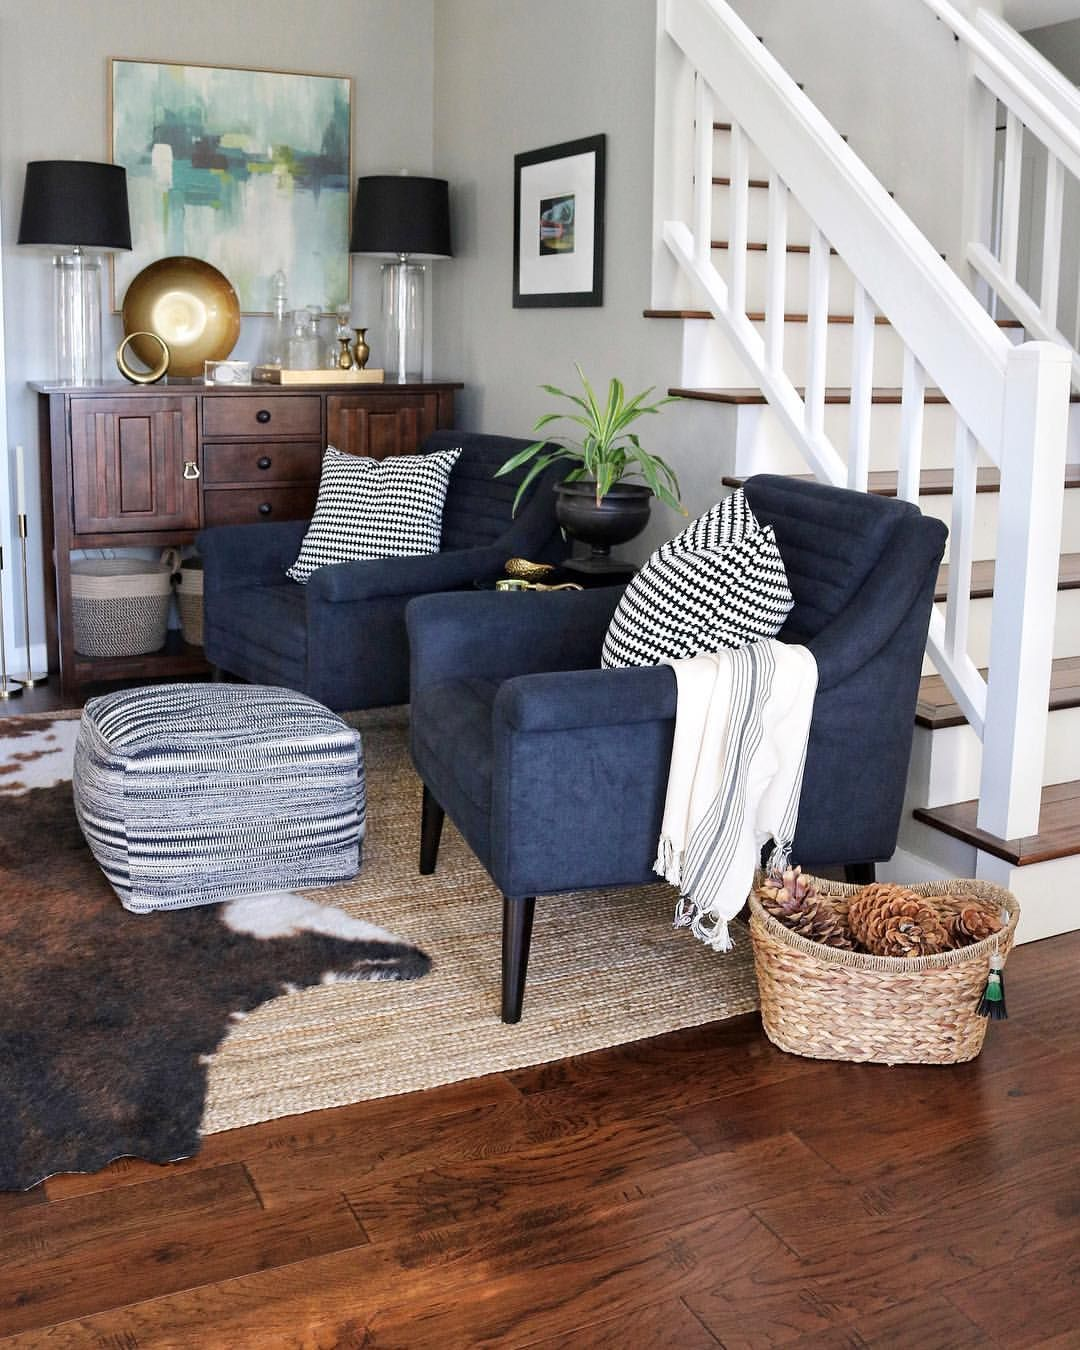 Living Room with Abstract Art, Navy Chairs, Jute Rug, & Faux Cowhide #havenlylivingroom